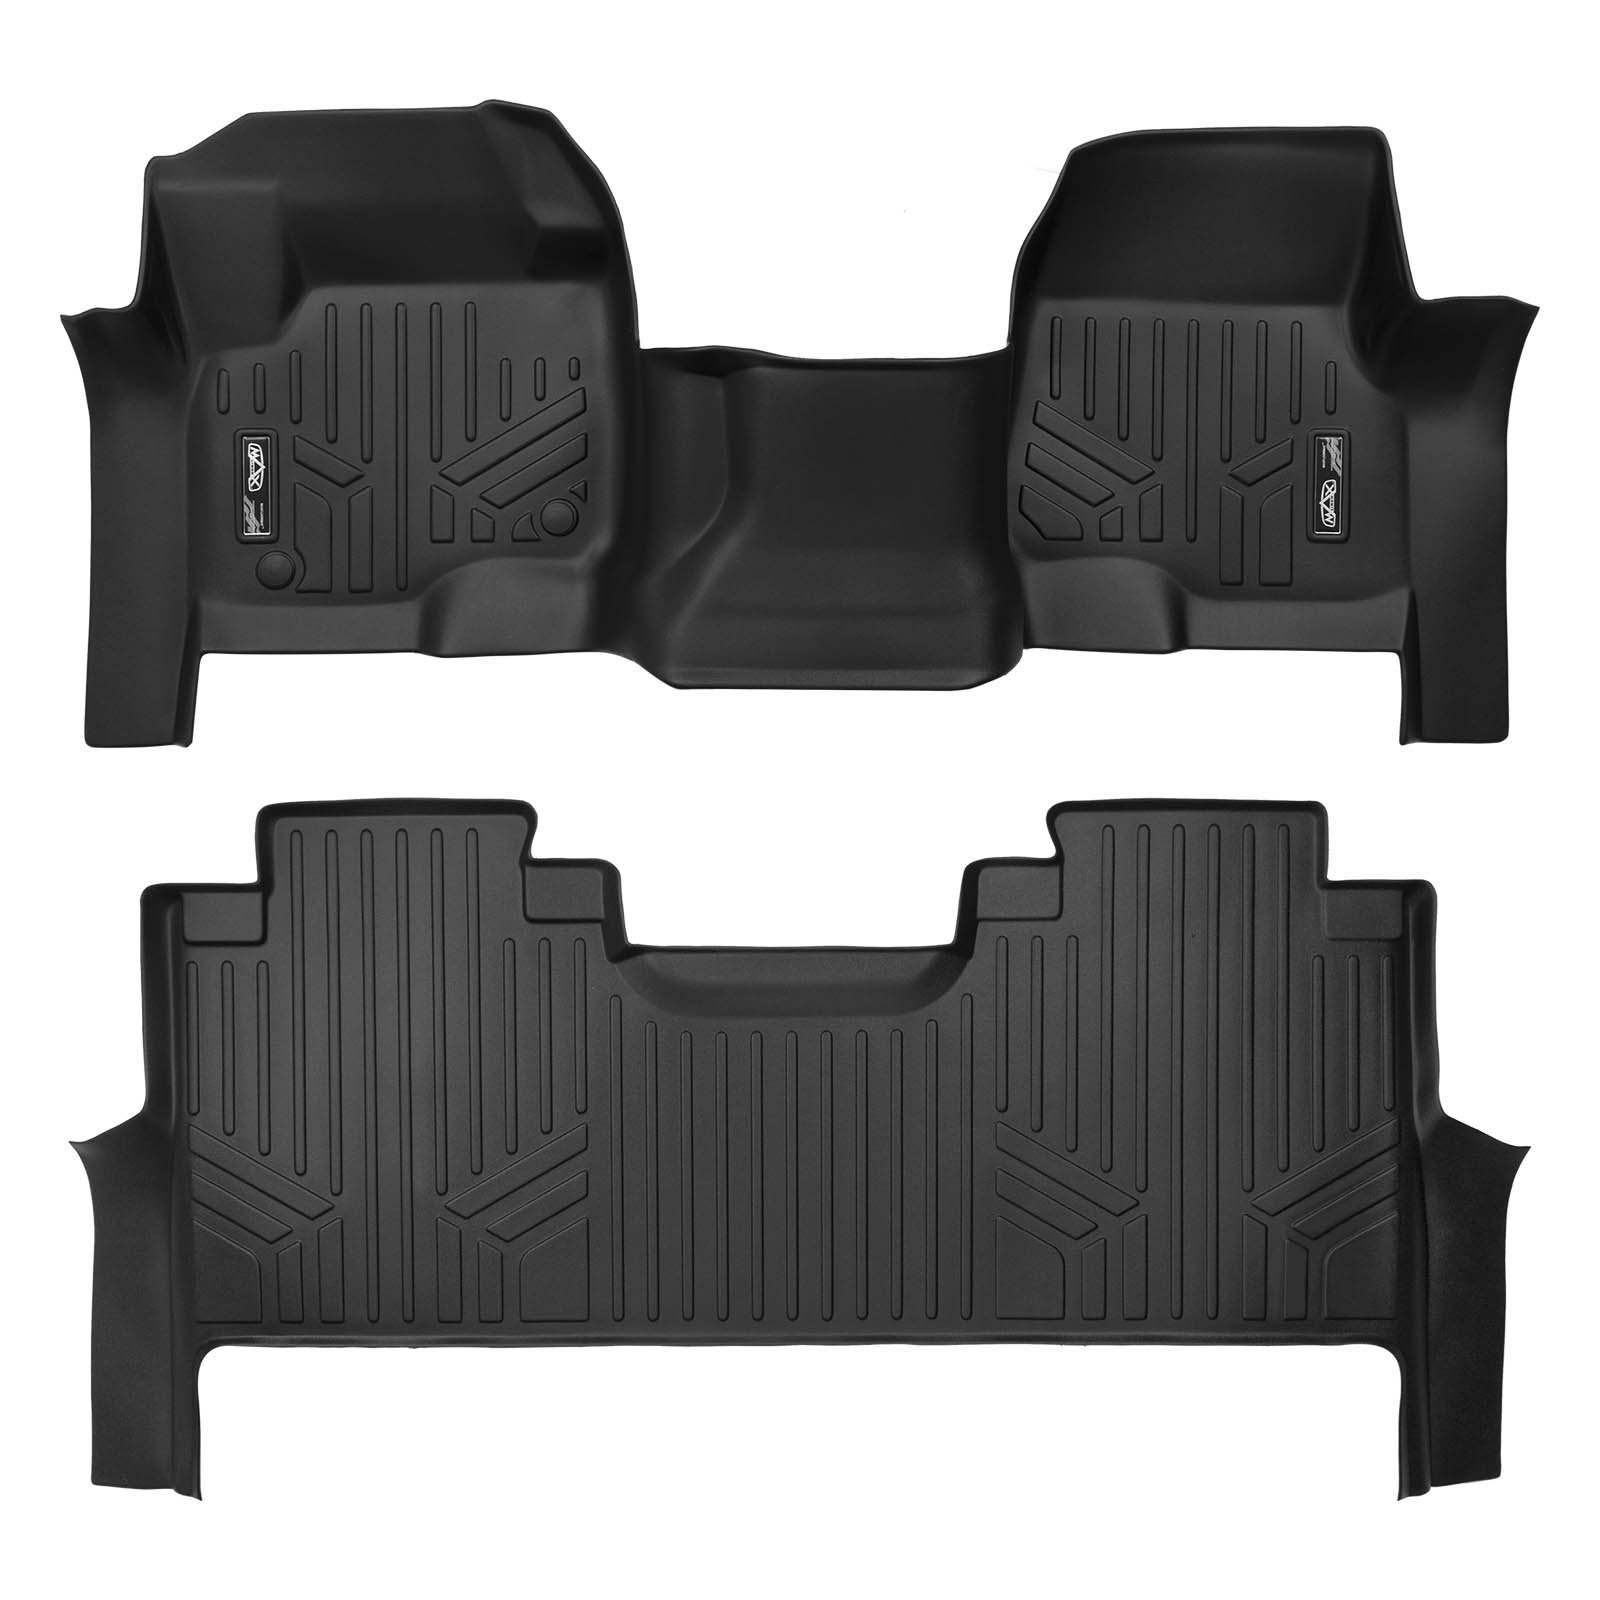 MAX LINER A0298/B0298 Custom Floor Mats 2 Liner Set Black for 2017-2019 Ford F-250/F-350 Super Duty Crew Cab with 1st Row Bench Seat